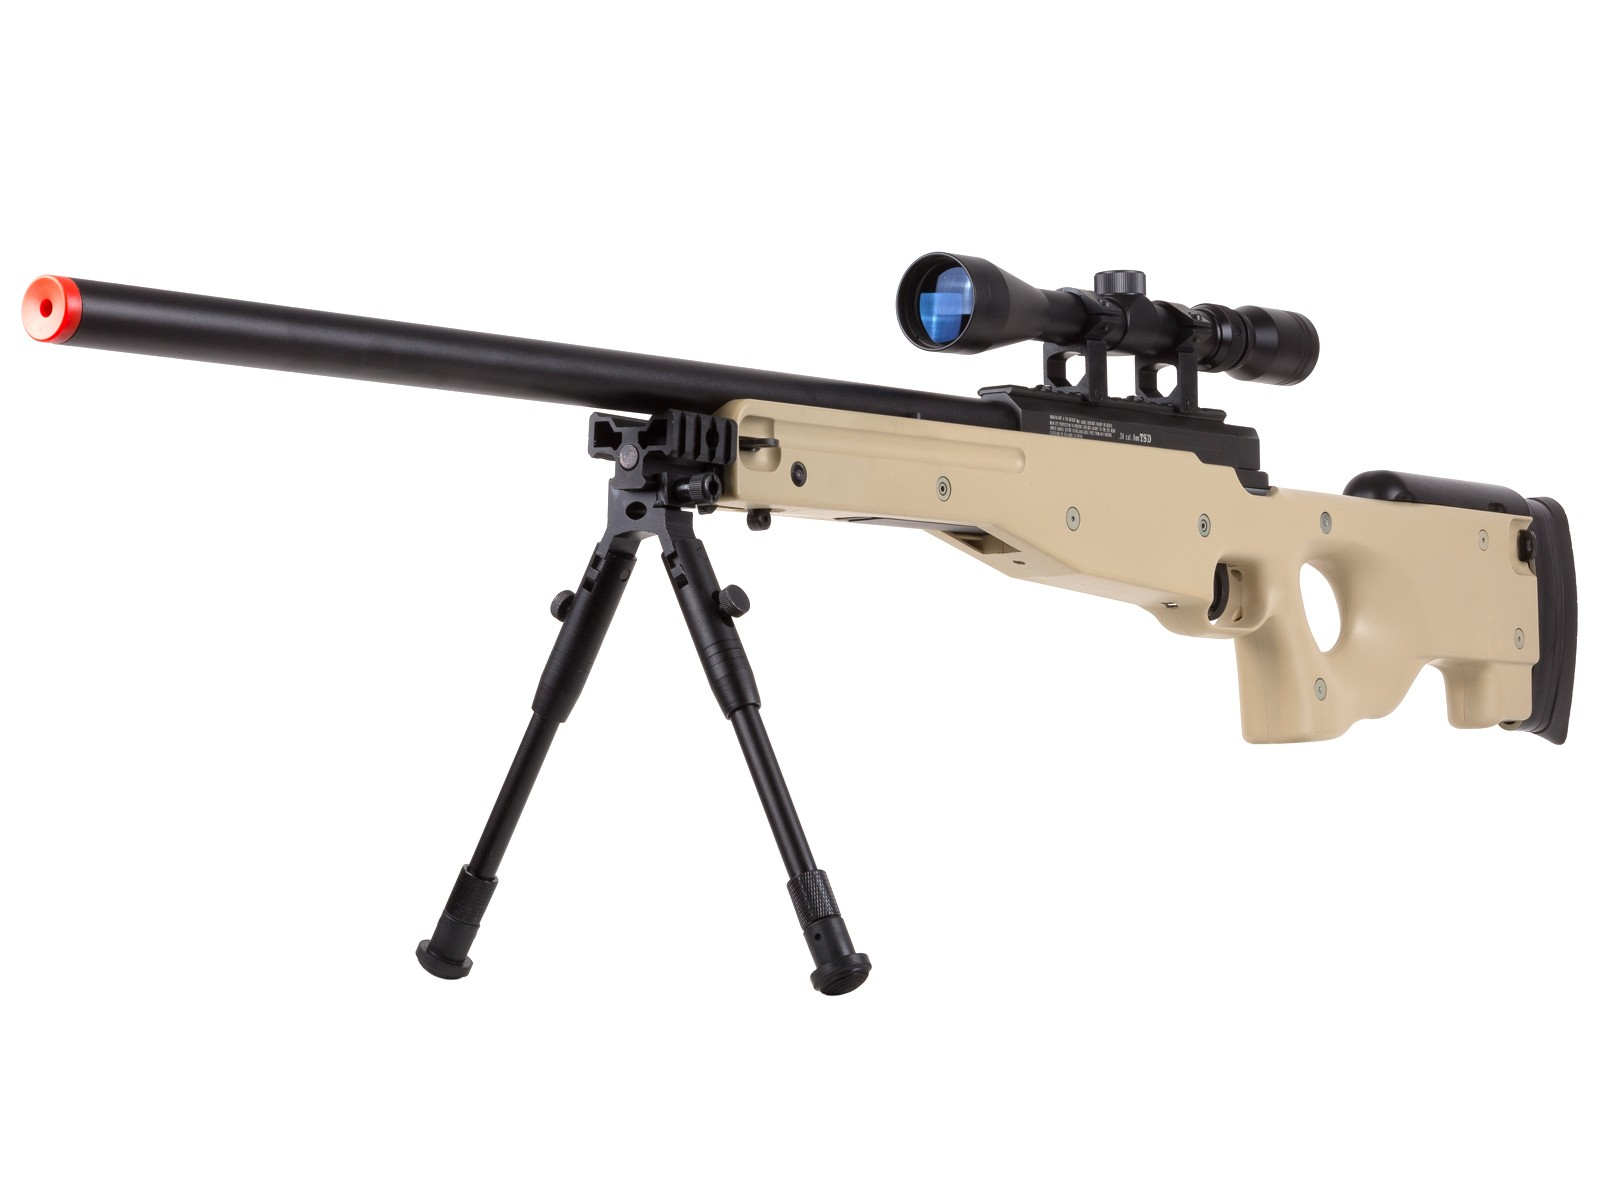 TSD_Tactical_Series_Type_96_Sniper_Tan_Rifle_6mm